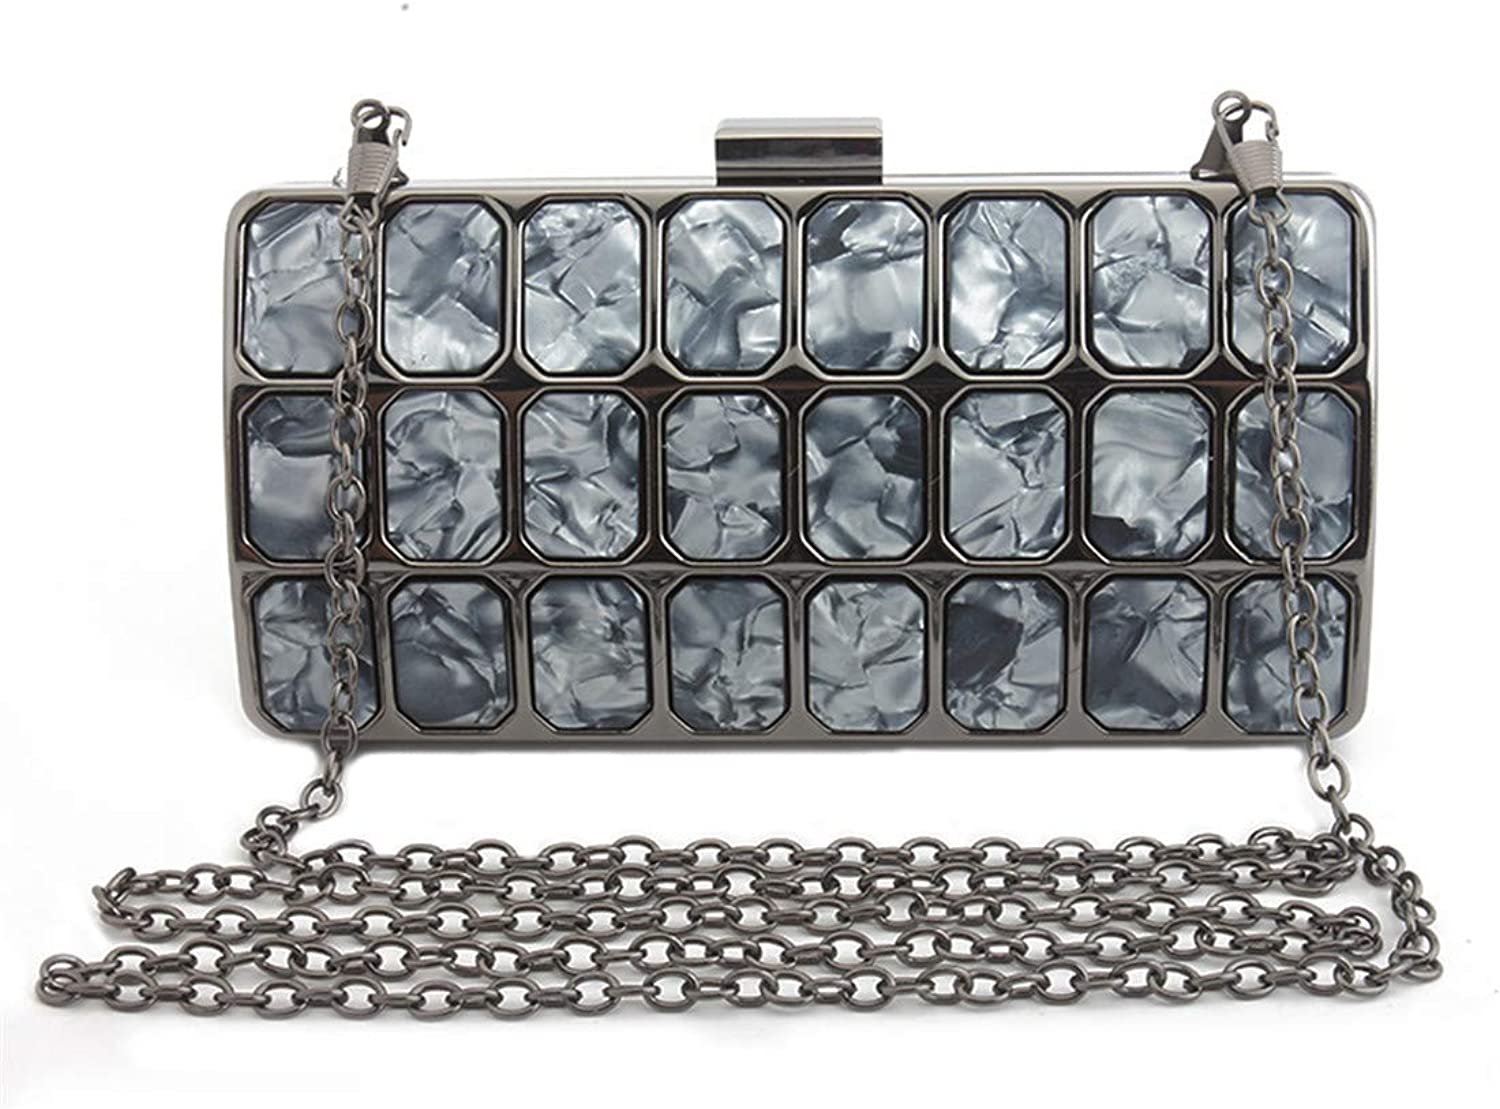 LETODE Women with Bags of Metal and Acrylic Designed for Elegant Women.